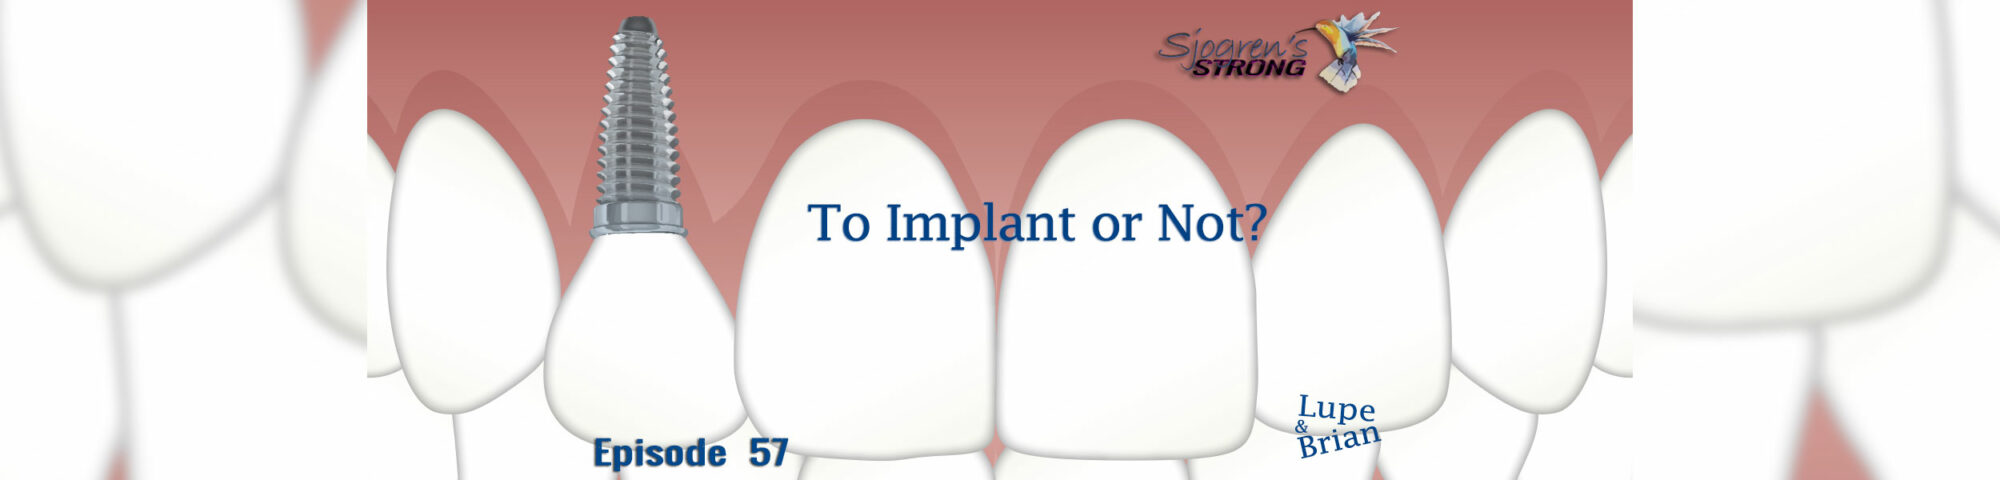 To Implant or Not